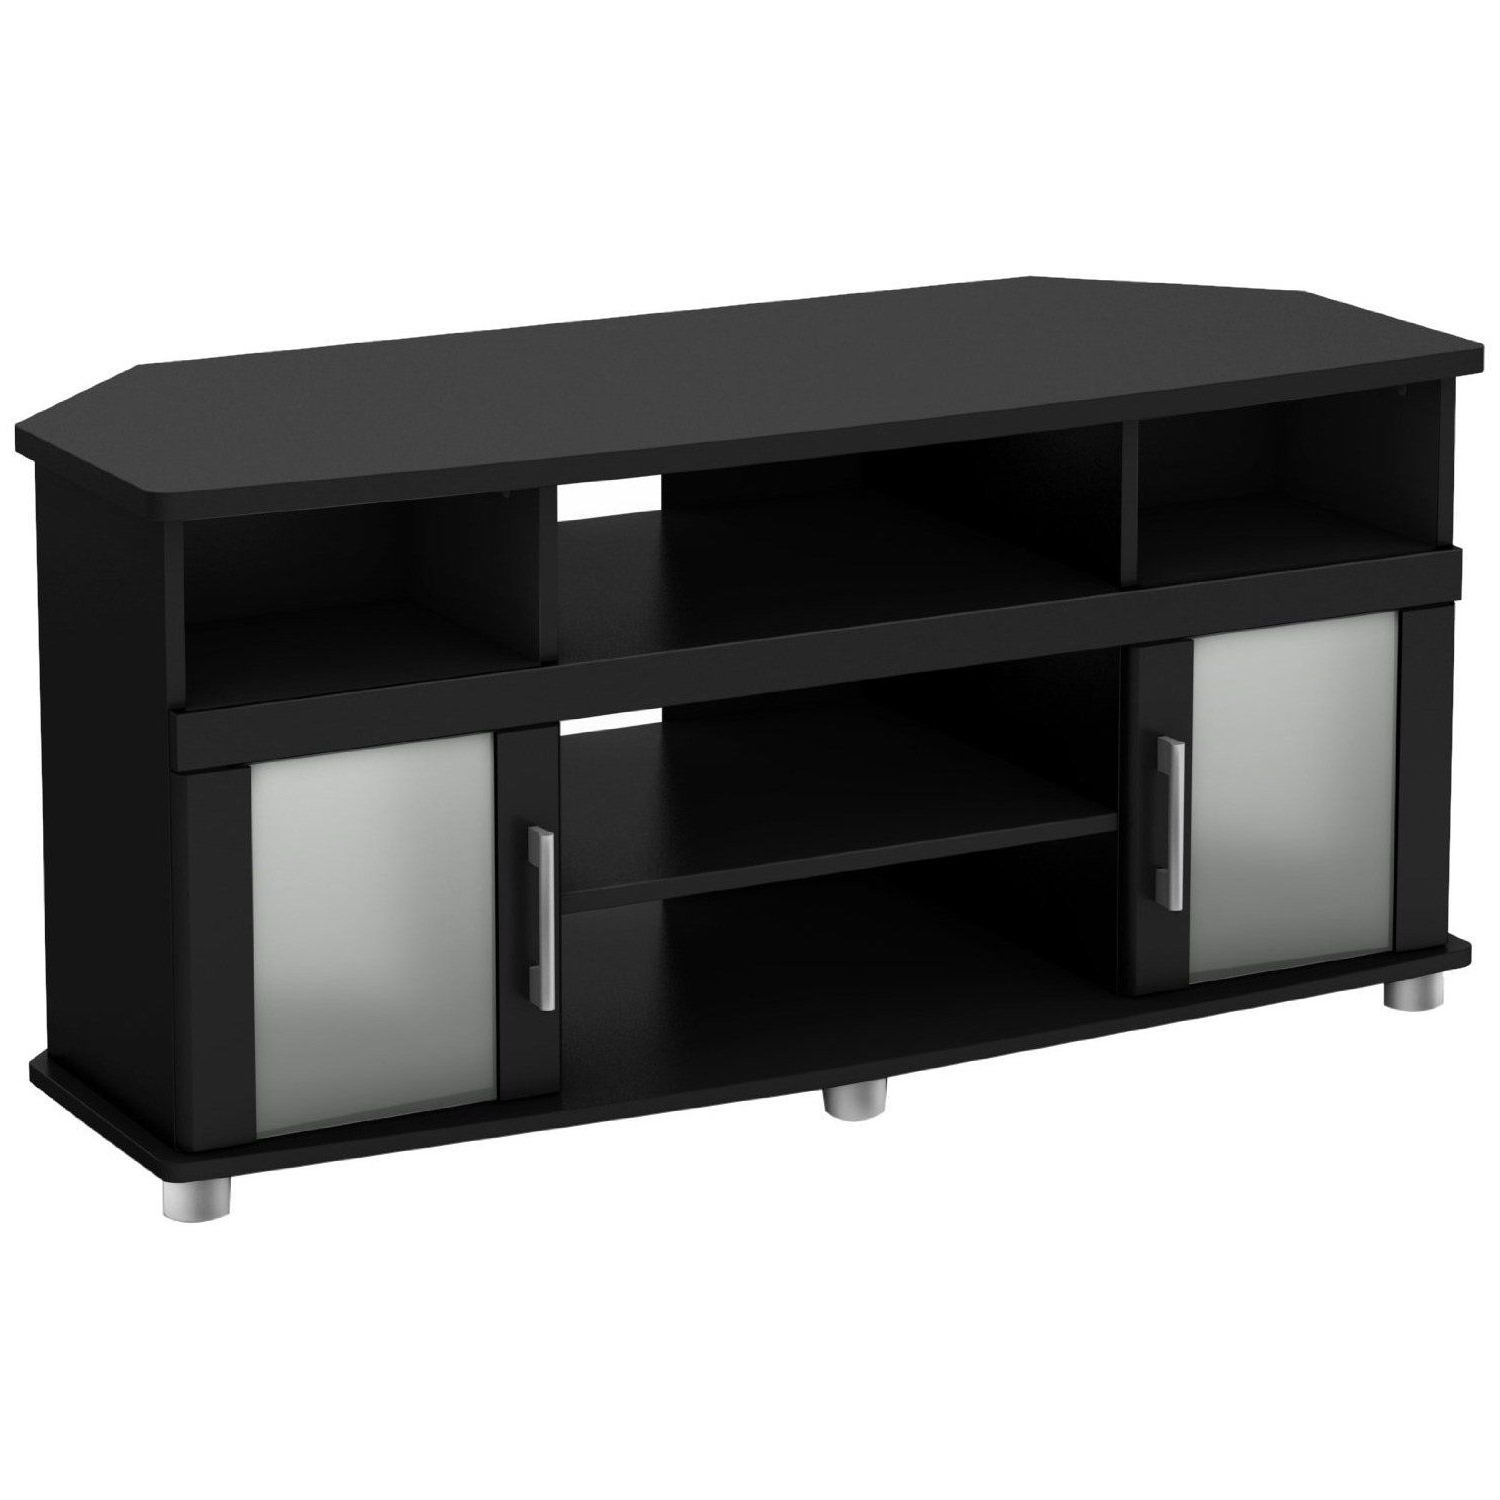 Most Up To Date Corner Tv Cabinets With Glass Doors In Black Corner Tv Stand With Frosted Glass Doors (Gallery 10 of 20)